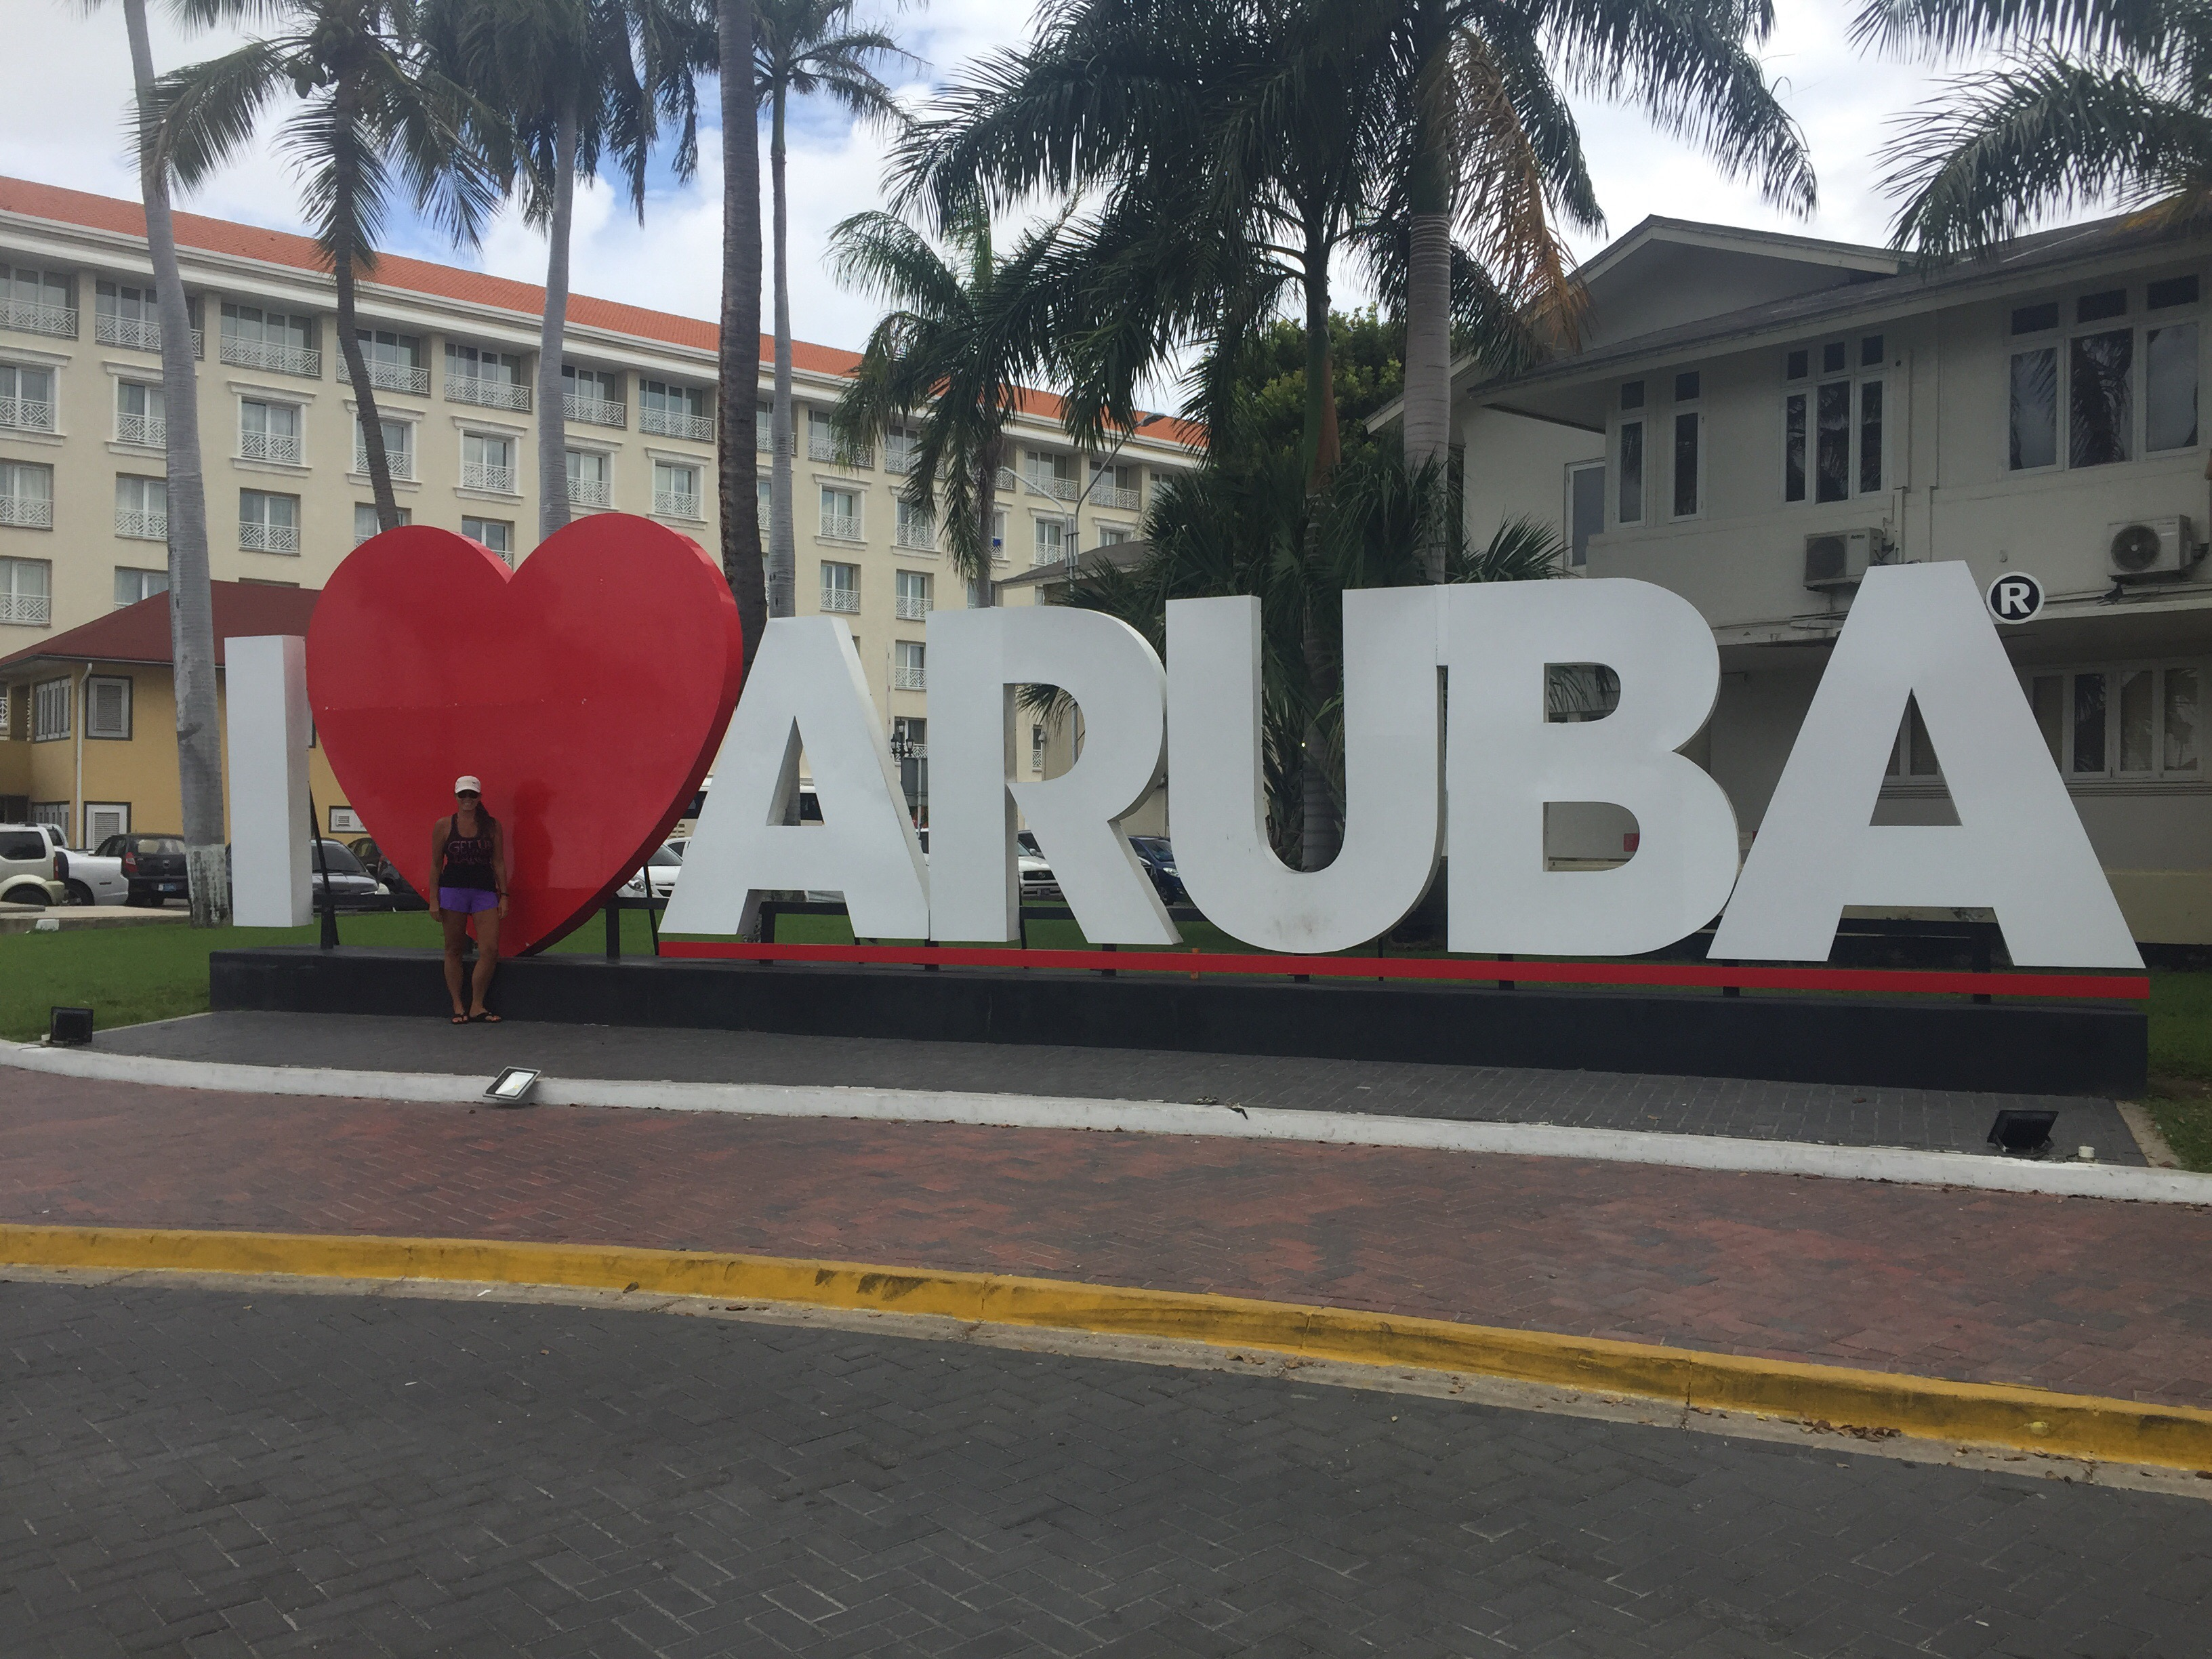 I Love Aruba signs all over the island.